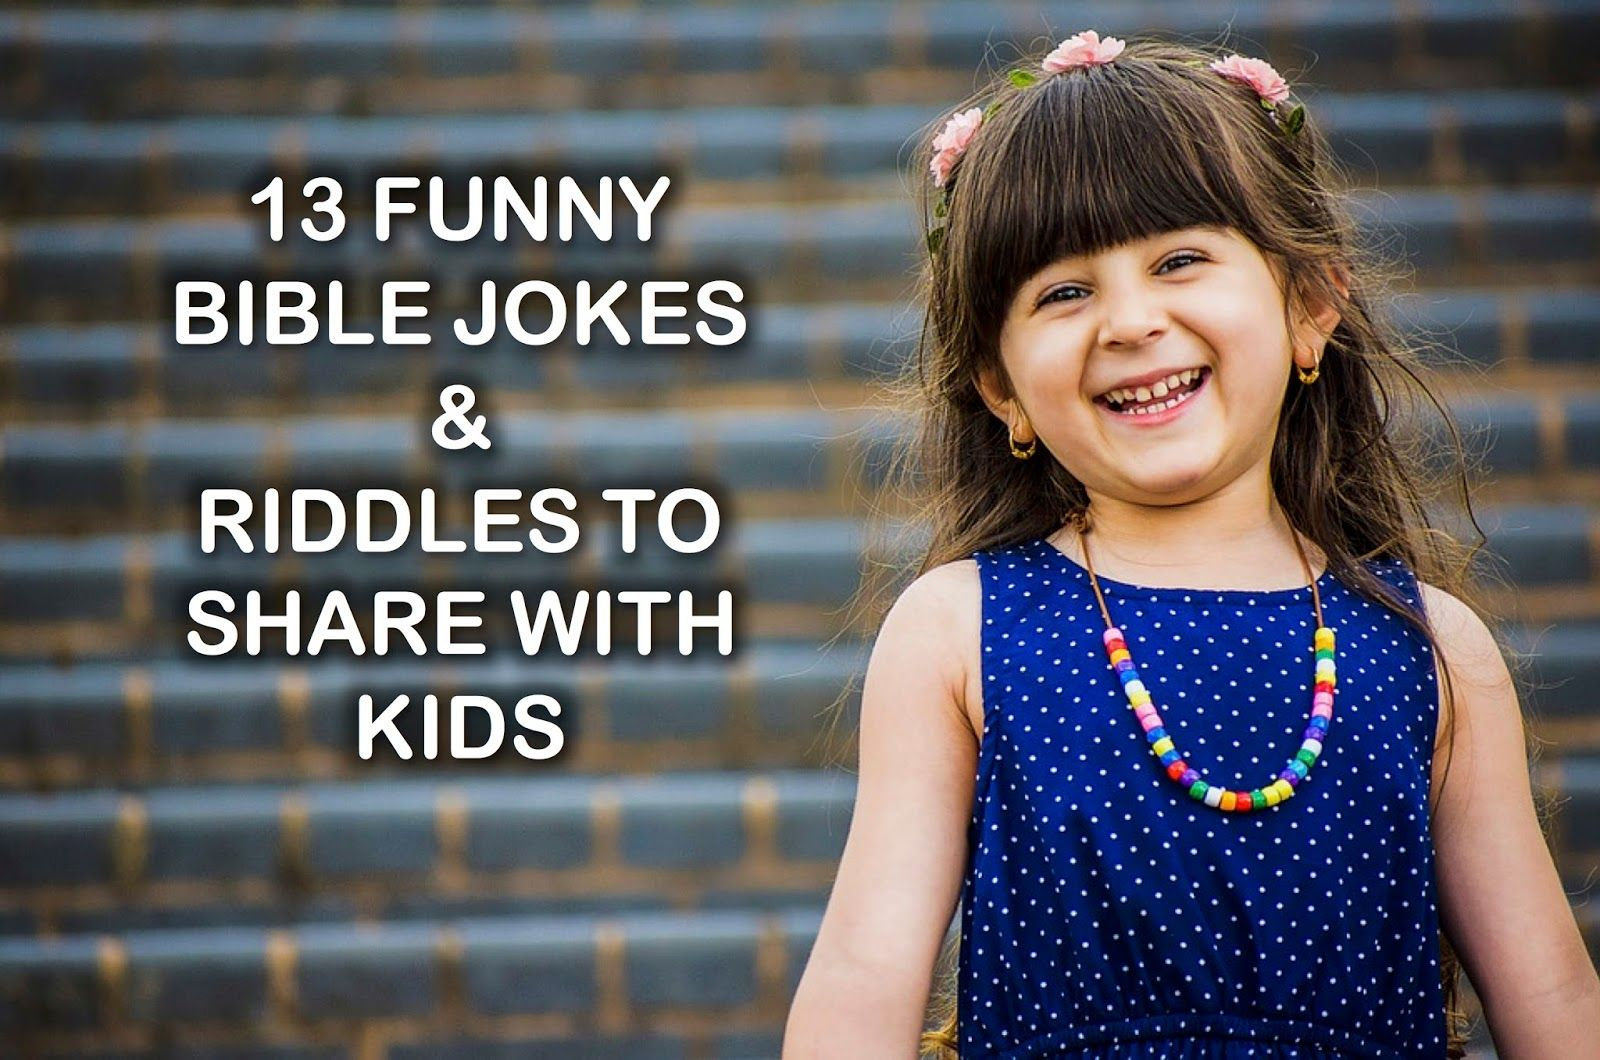 Bible jokes, Bible jokes and riddles, Bible jokes for kids